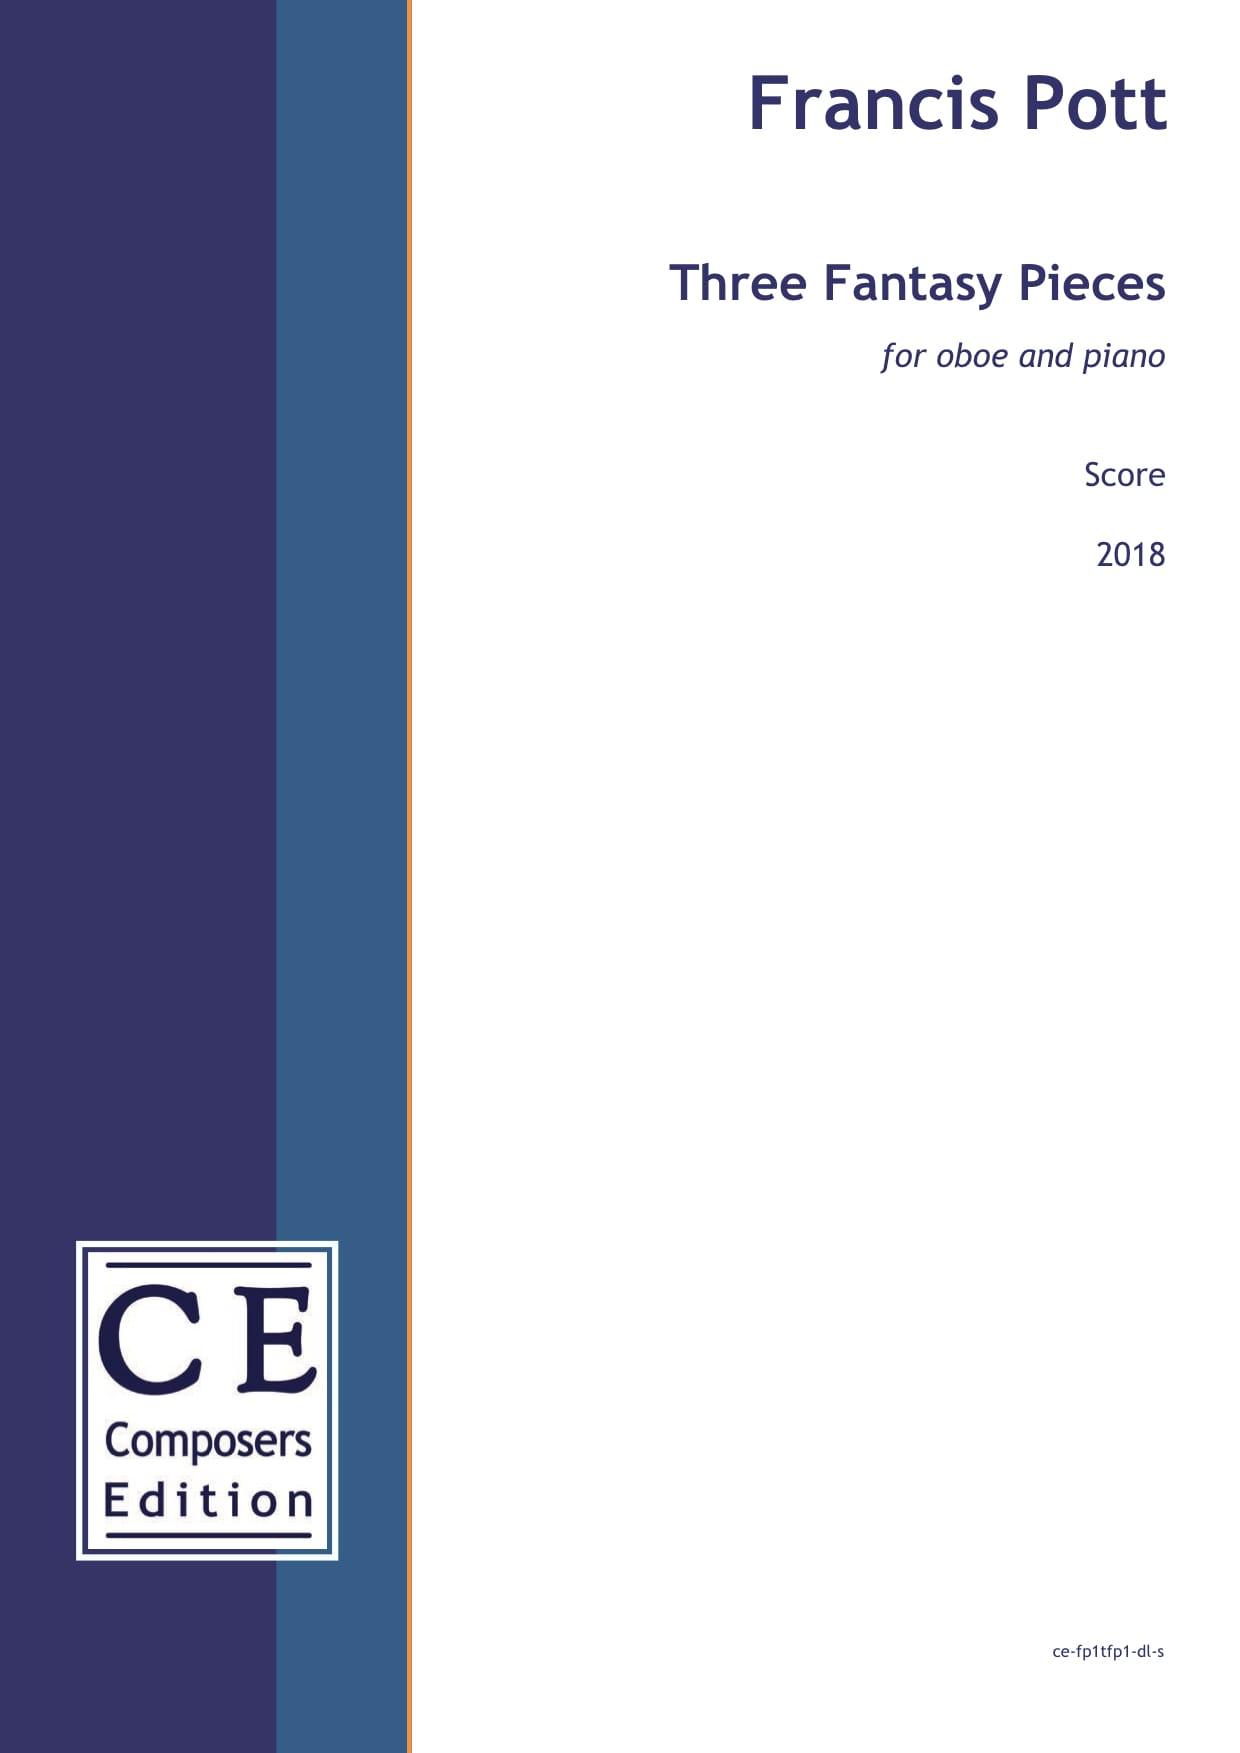 Francis Pott: Three Fantasy Pieces for oboe and piano